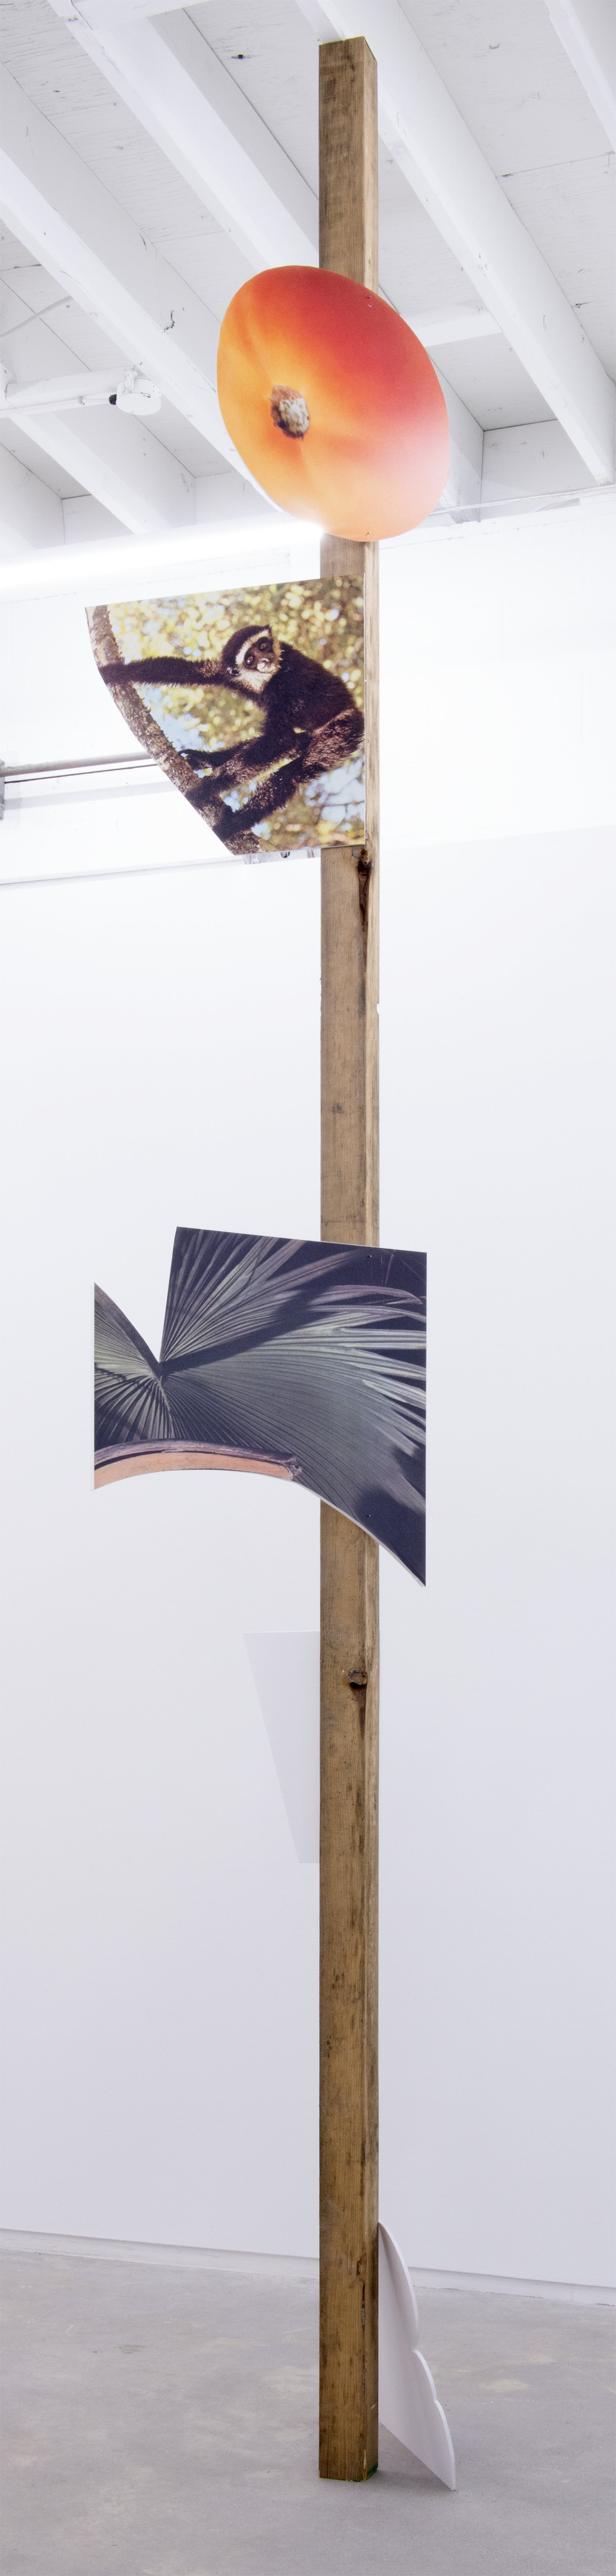 Geoffrey Farmer,This one is the lightness of a palm frond, the sound of a lute, the colour of fruit. The expressions of a monkey. A large orange eye. I drift in the warm wind., 2014, douglas fir pole, 6 photographs mounted on foamcore, 200 x 4 x 4 in. (508 x9 x 9 cm)